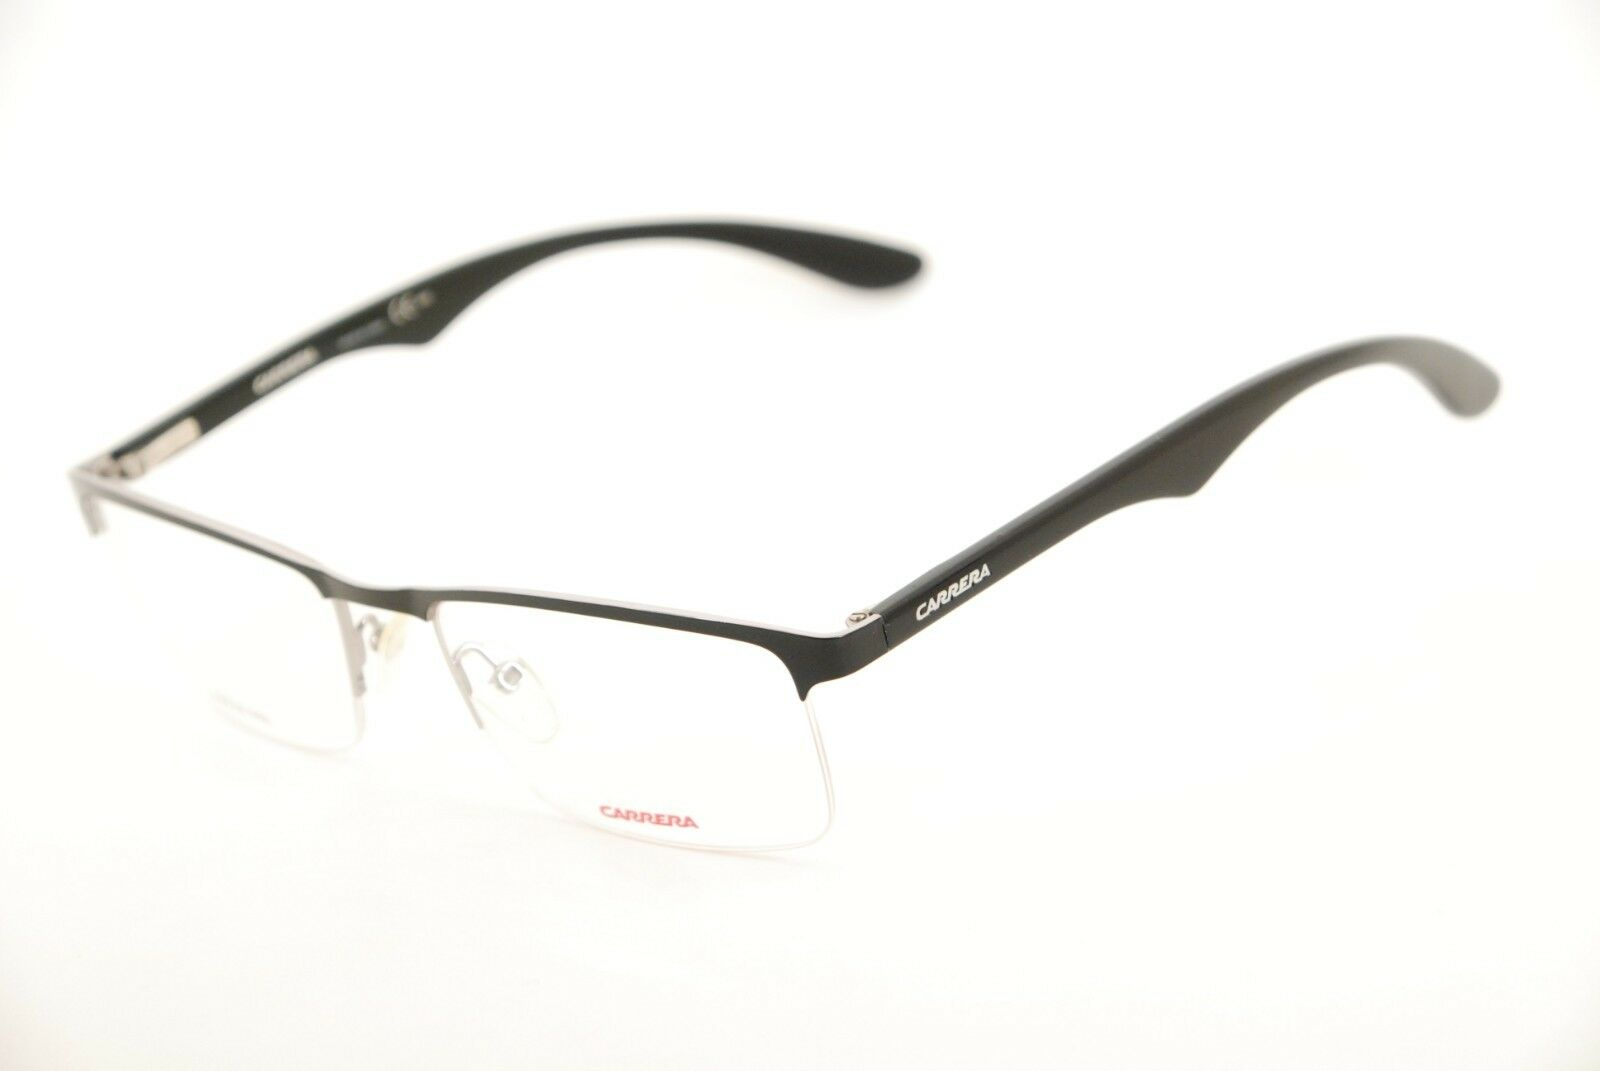 f7385cc0b9f8 Carrera 6623 7a1 Eyeglass Frames 54mm for sale online